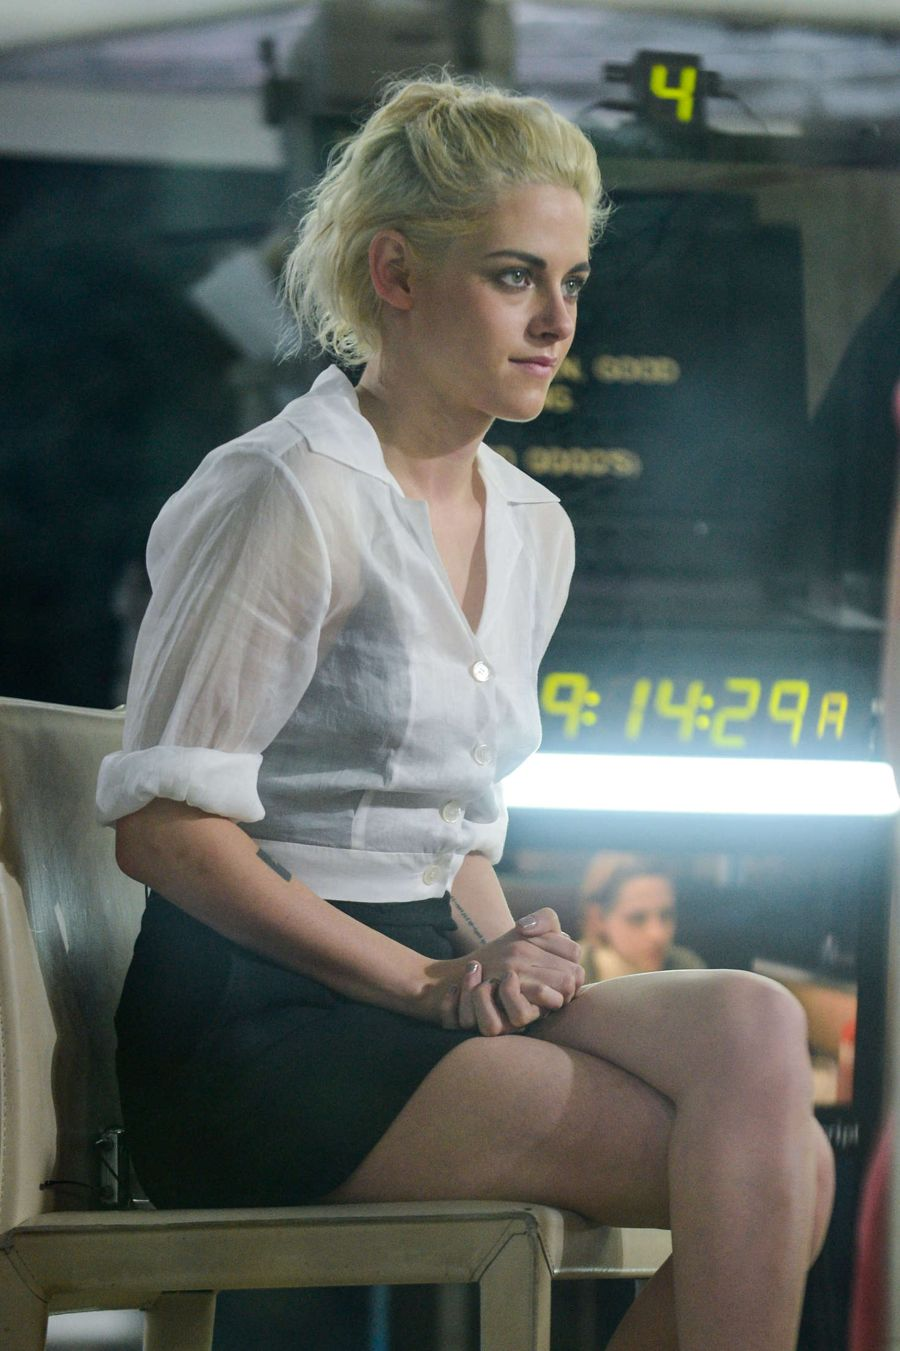 Kristen Stewart on The Today Show in NYC